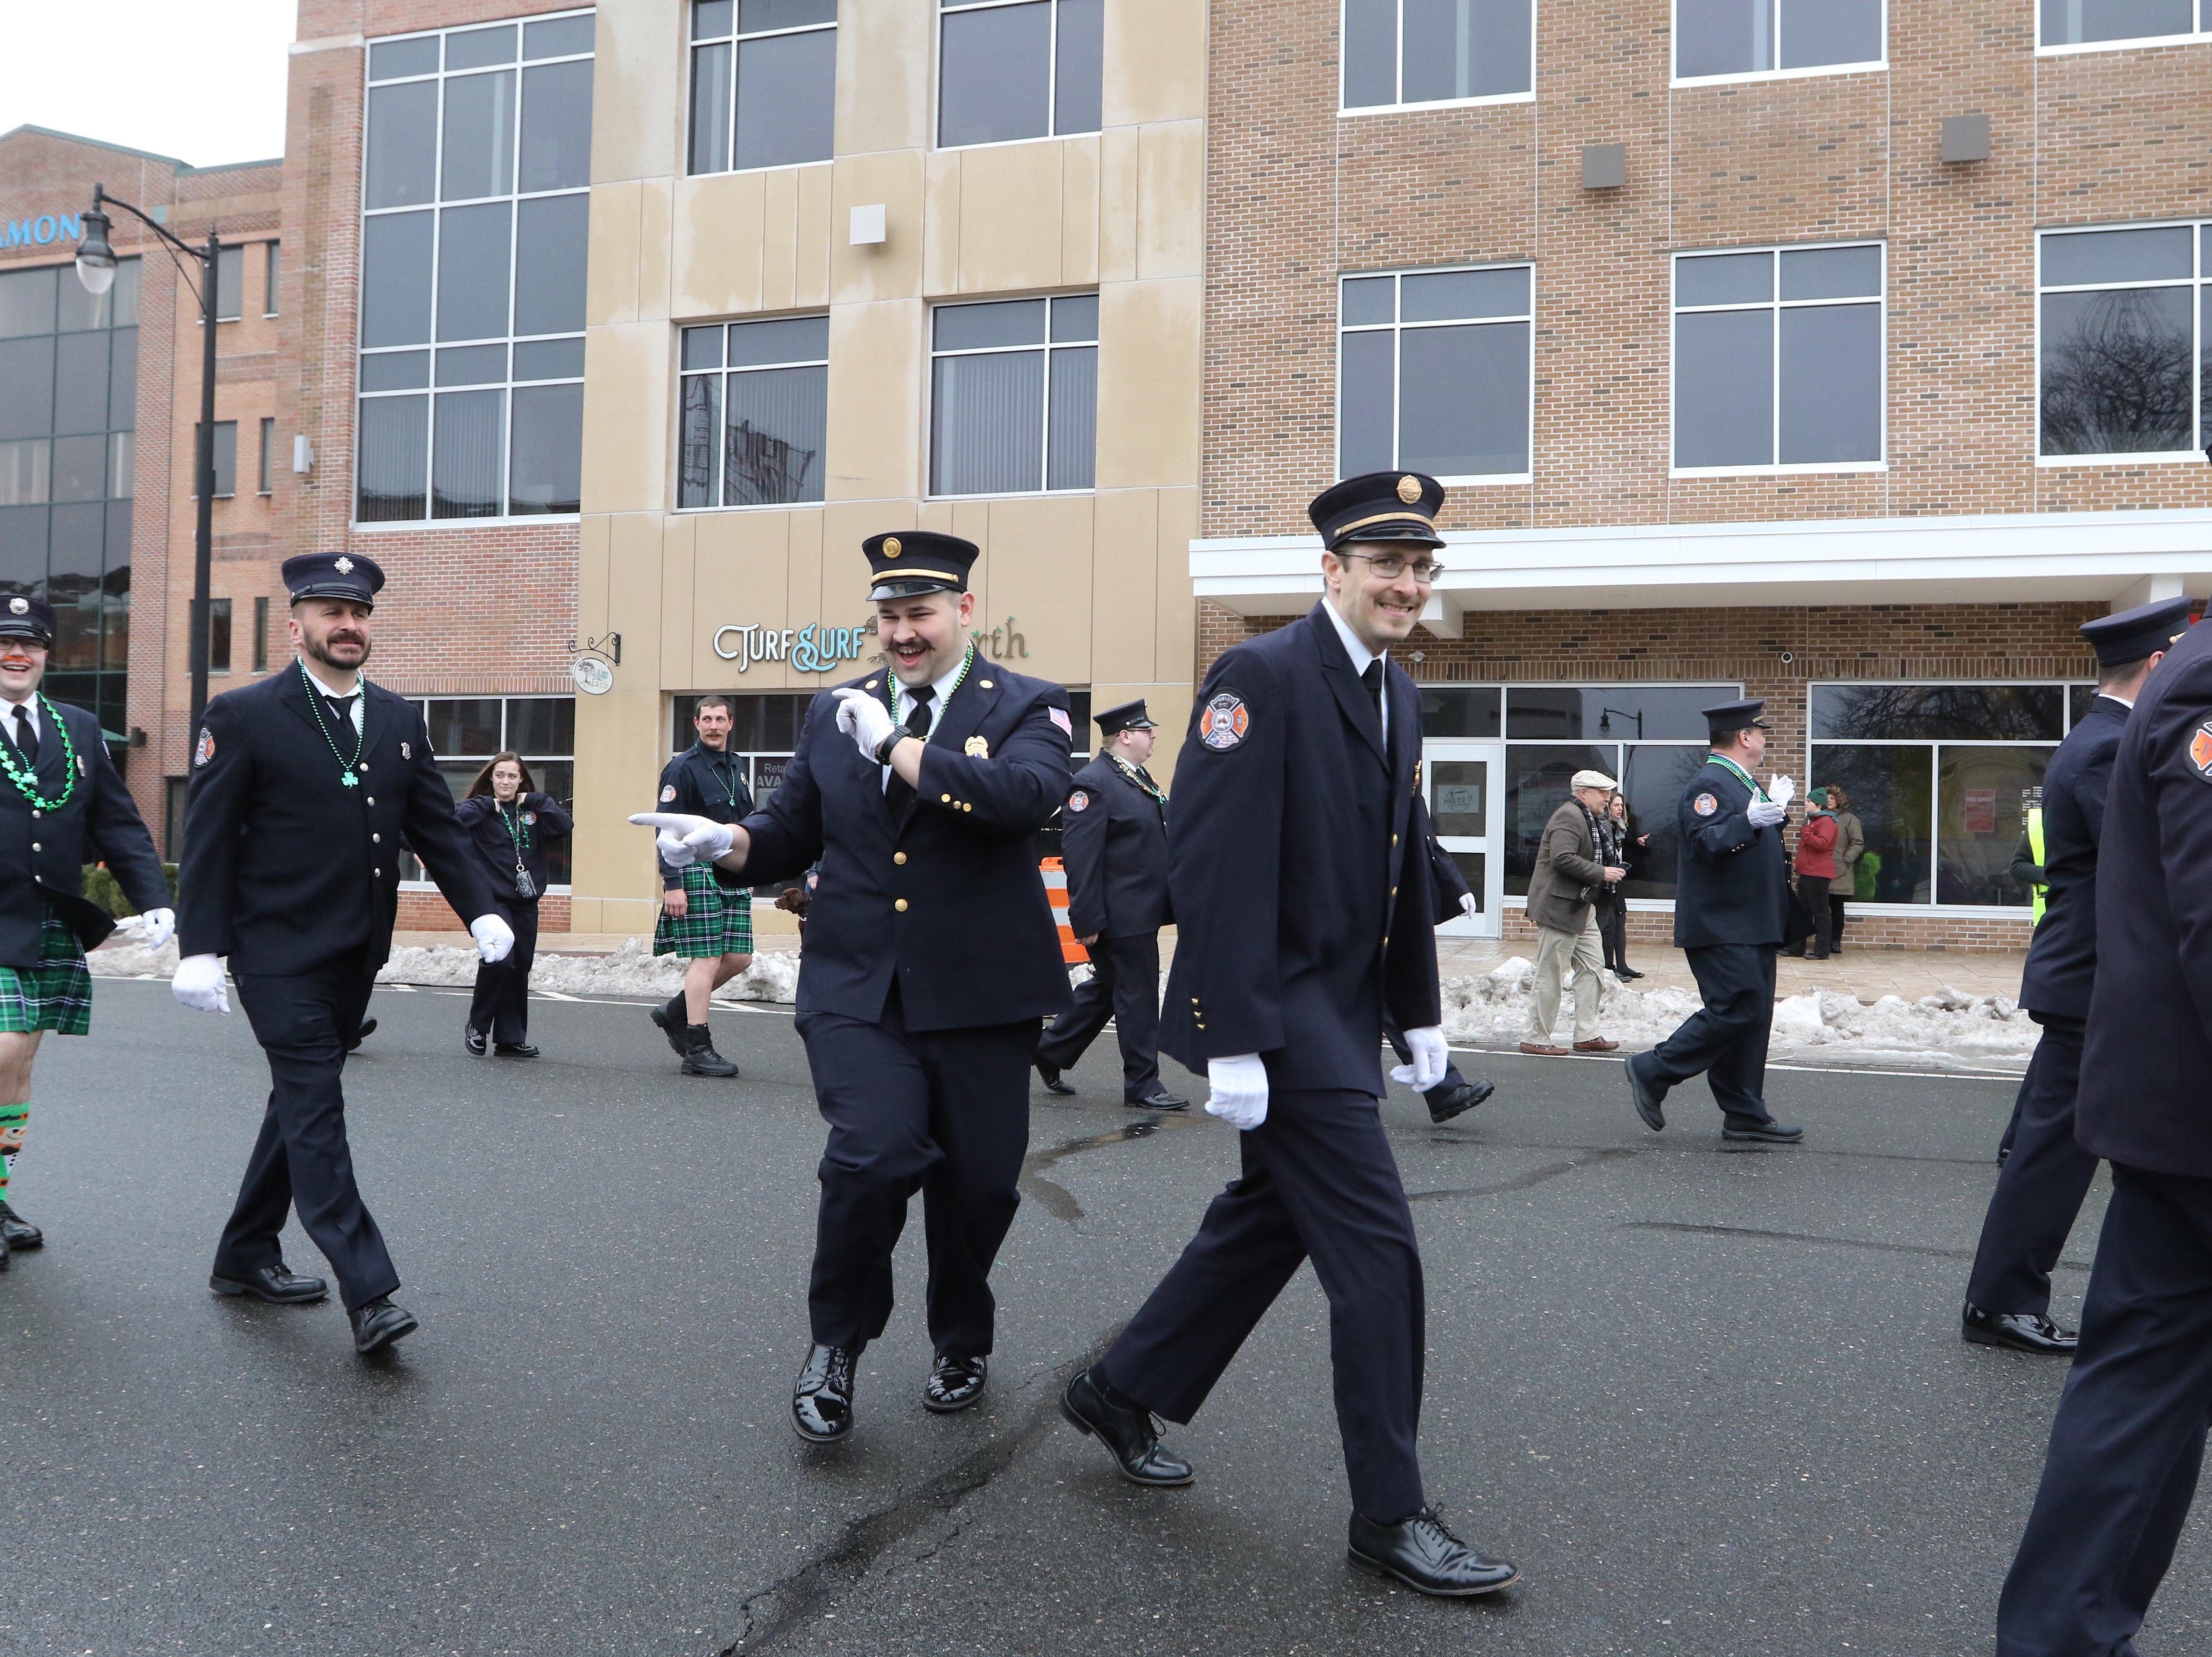 The 28th Somerville Saint Patrick's Parade was held in downtown Somerville, along Main Street, March 10.